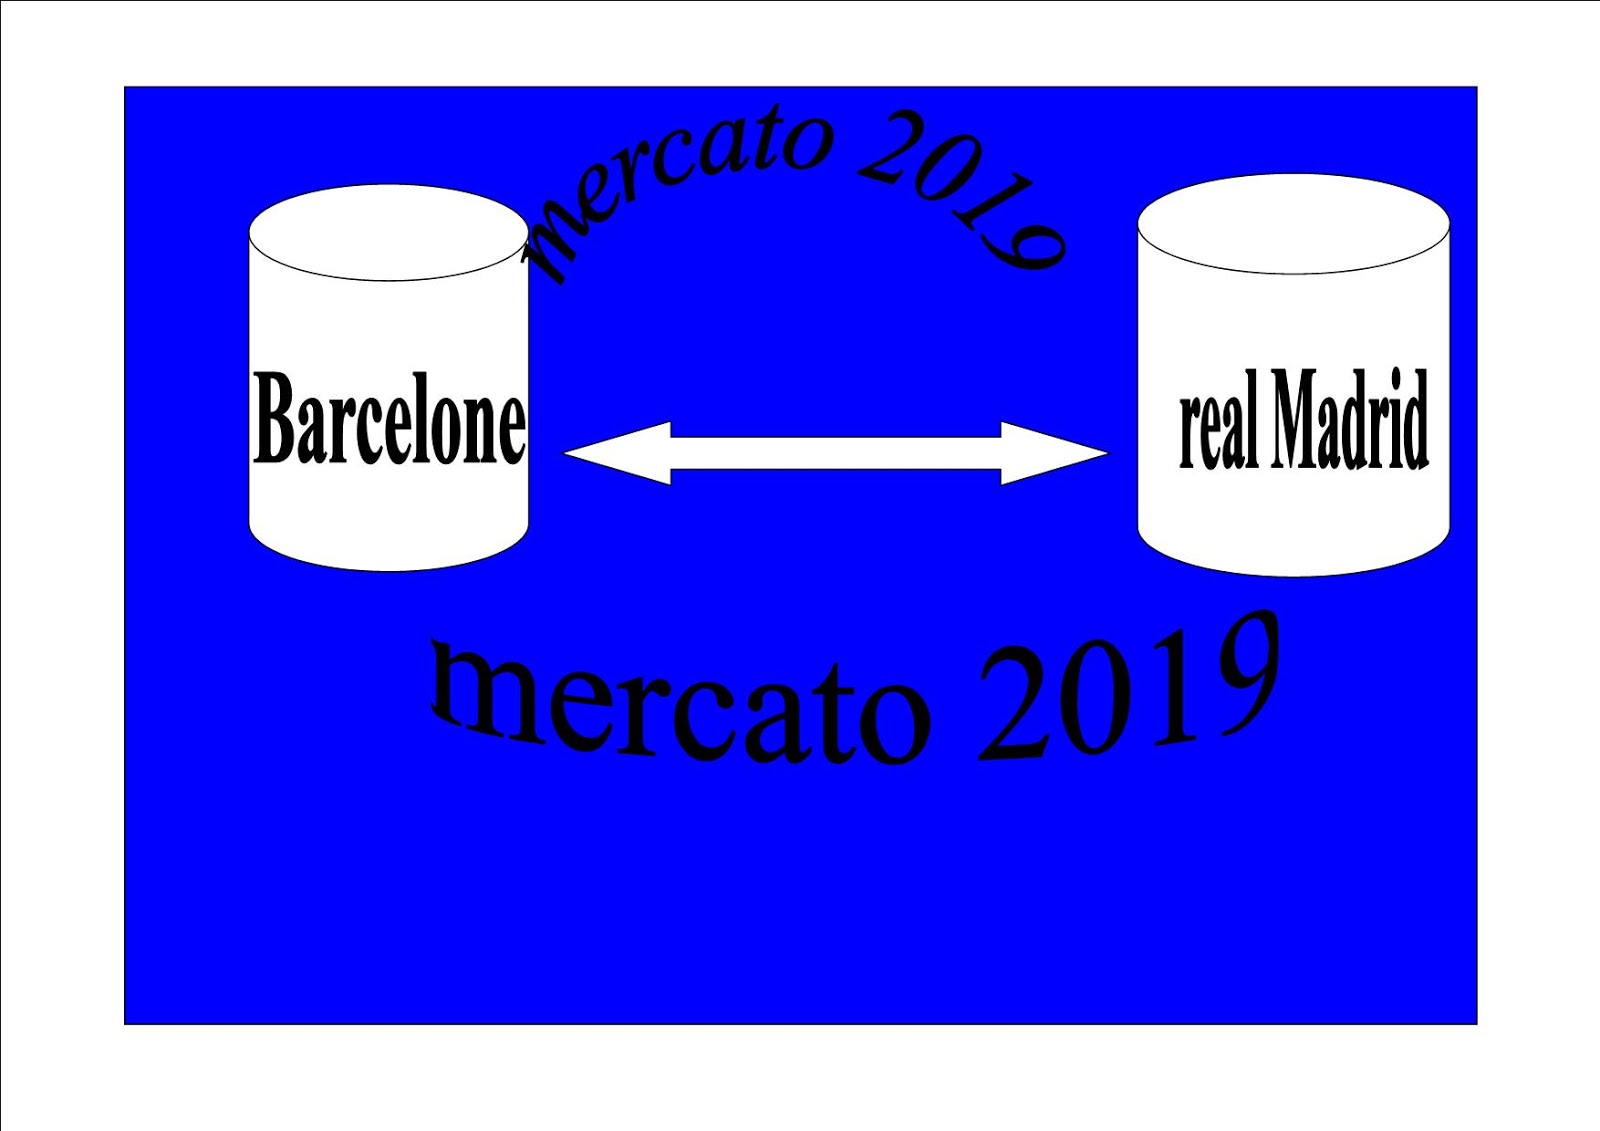 La LIGA Barcelone a battu real Madrid   mercato 2019